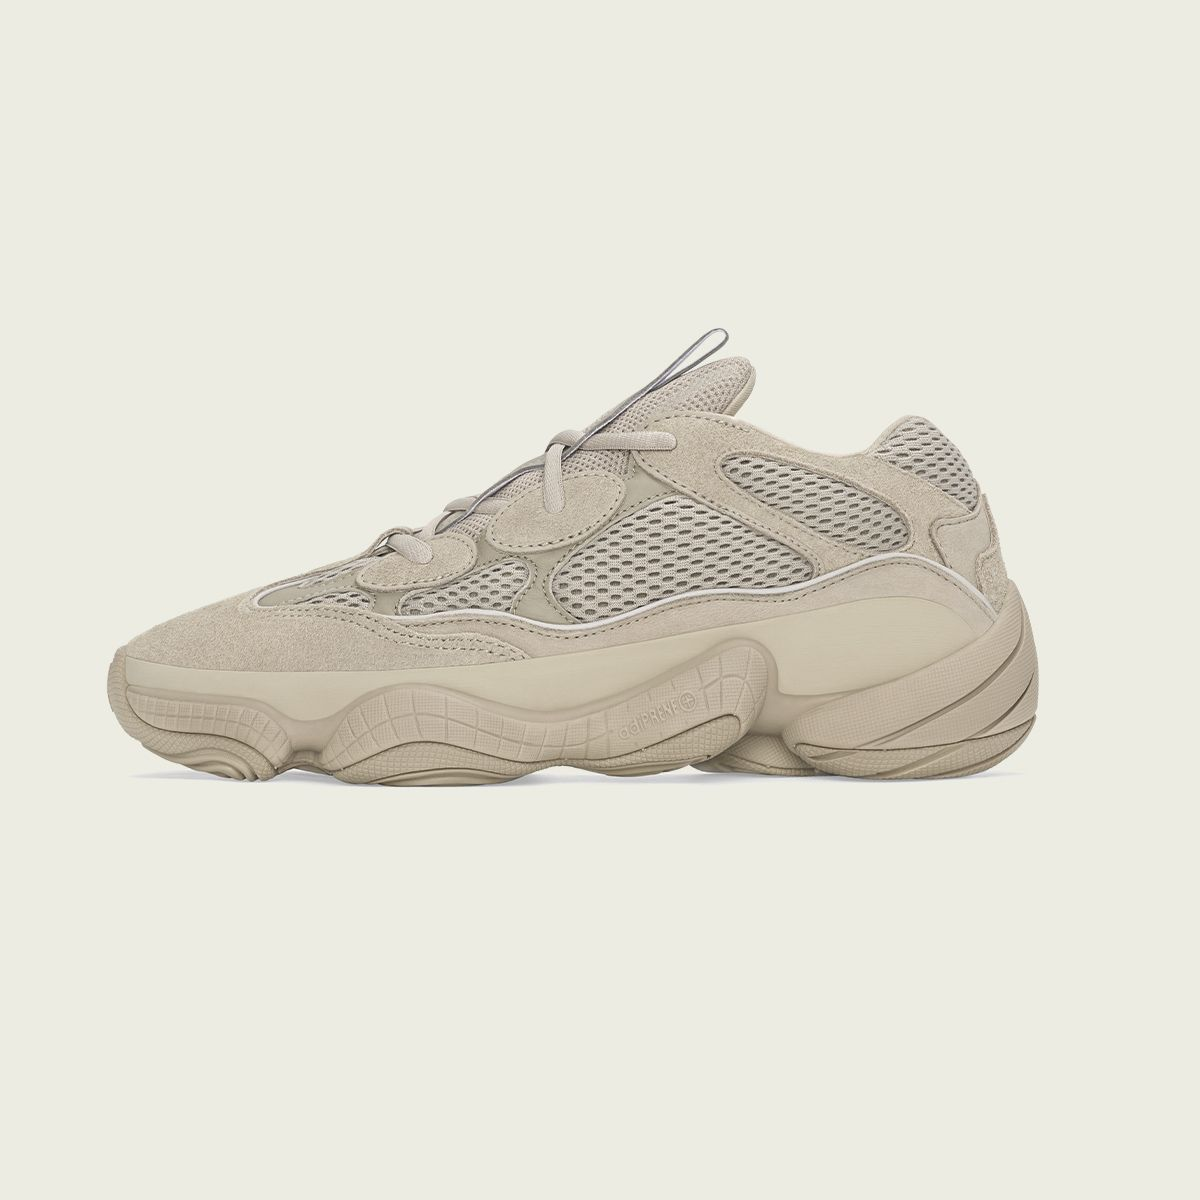 The YEEZY 500 drops in a 'Taupe Light' colour-up